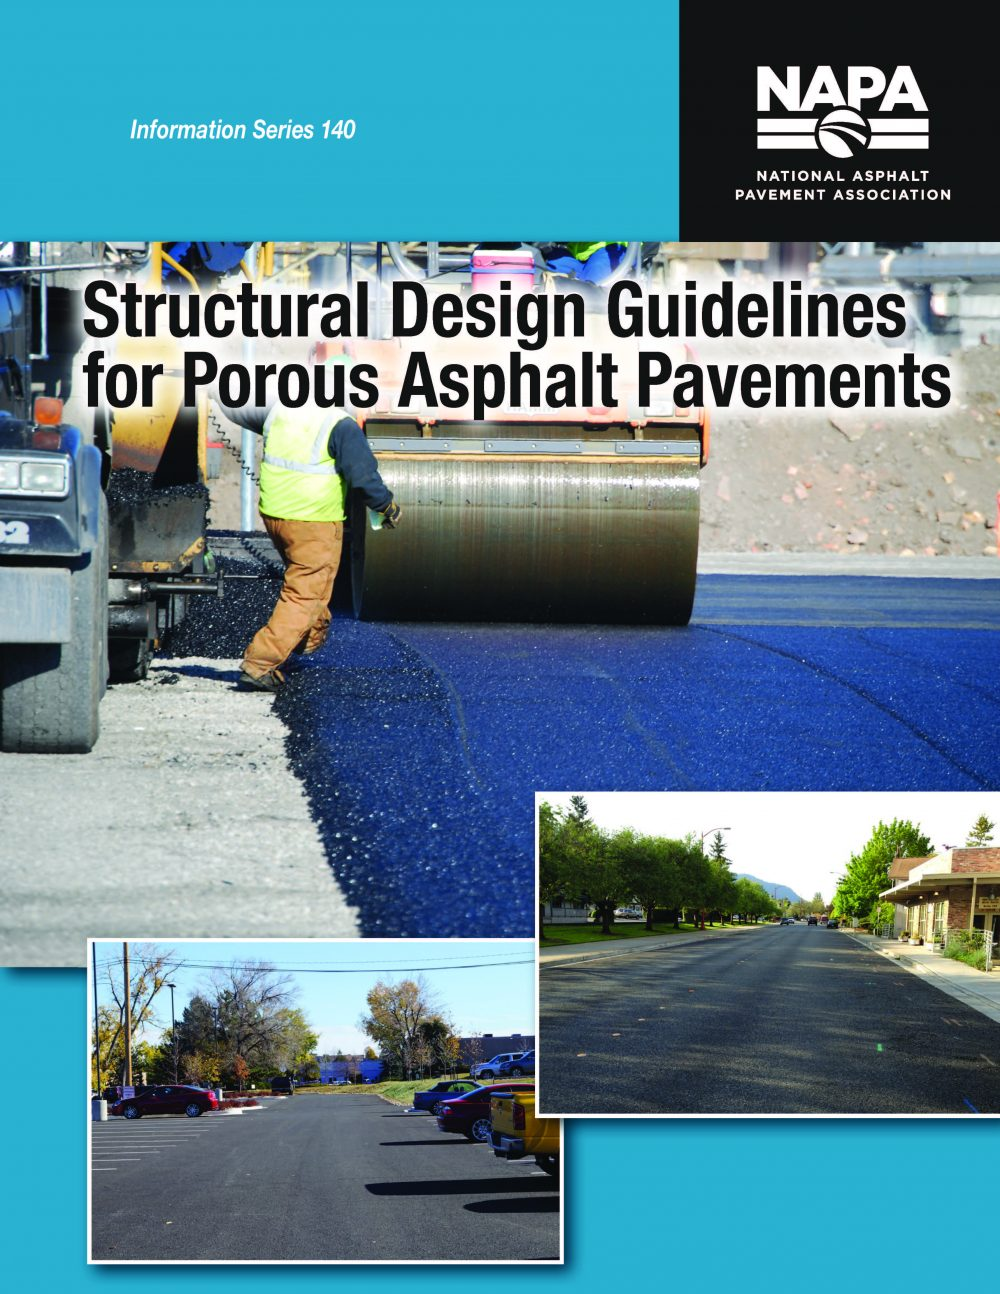 Structural Design Guide for Porous Asphalt is now available